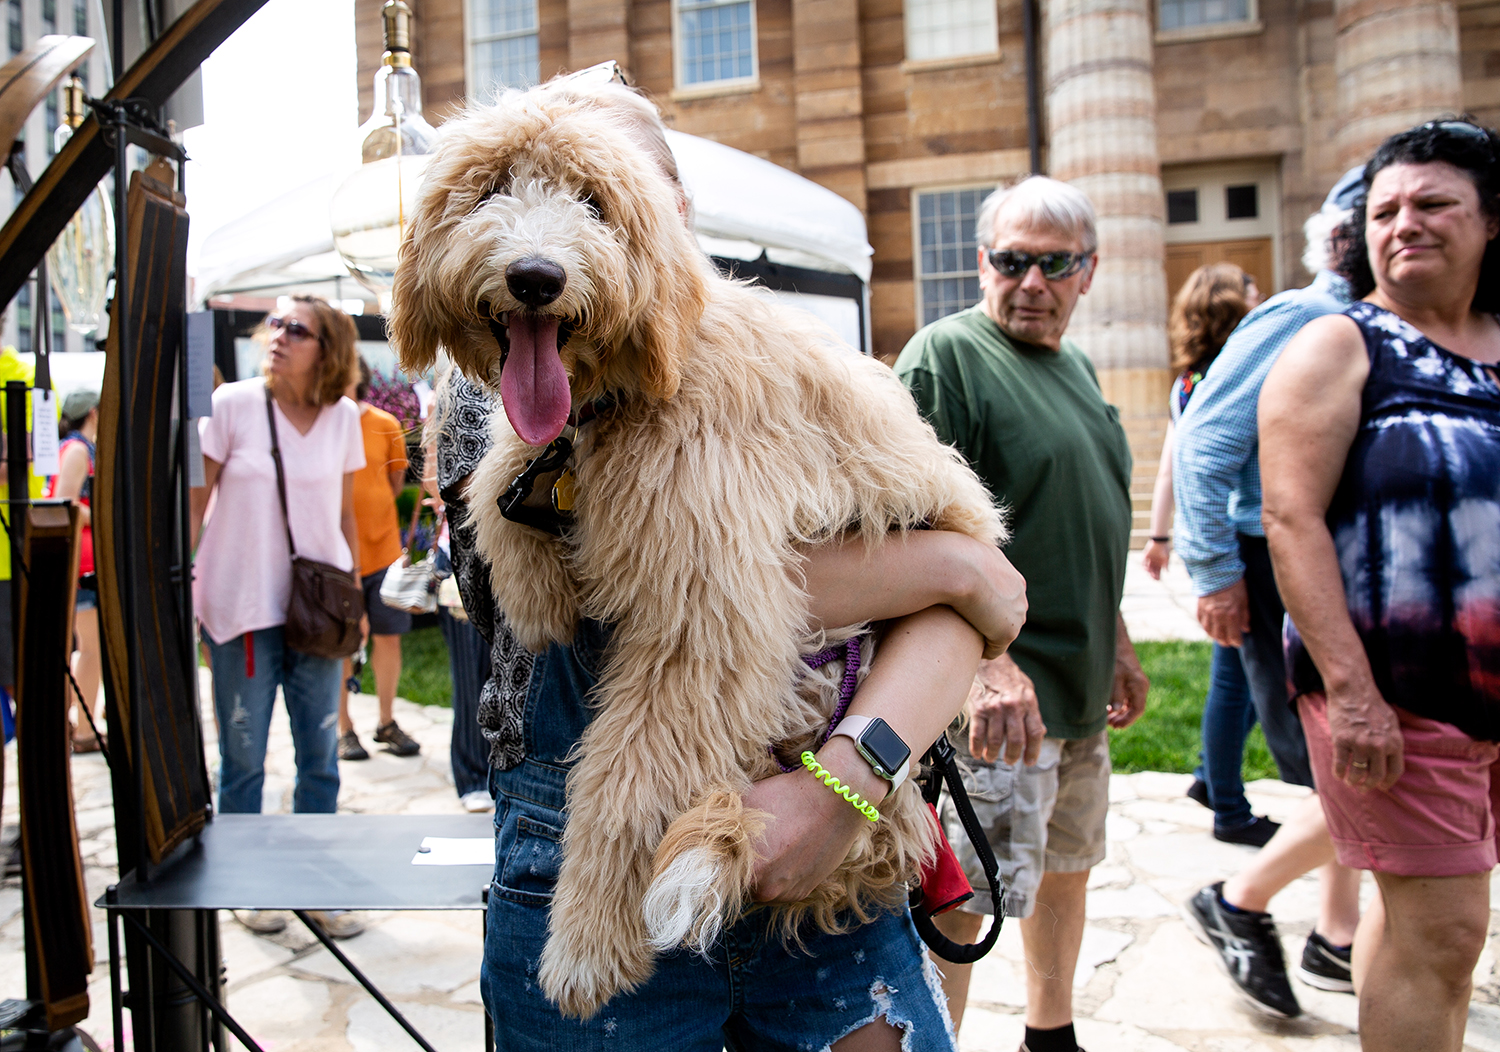 Jordy, a 6 month-old miniature golden doodle, isn't trained to walk in a straight line yet, her owner Hayley Brown claimed, so Brown carried her for a bit during their visit to the Old Capitol Art Festival Saturday, May 19, 2018 at the Old State Capitol in Springfield, Ill. [Rich Saal/The State Journal-Register]